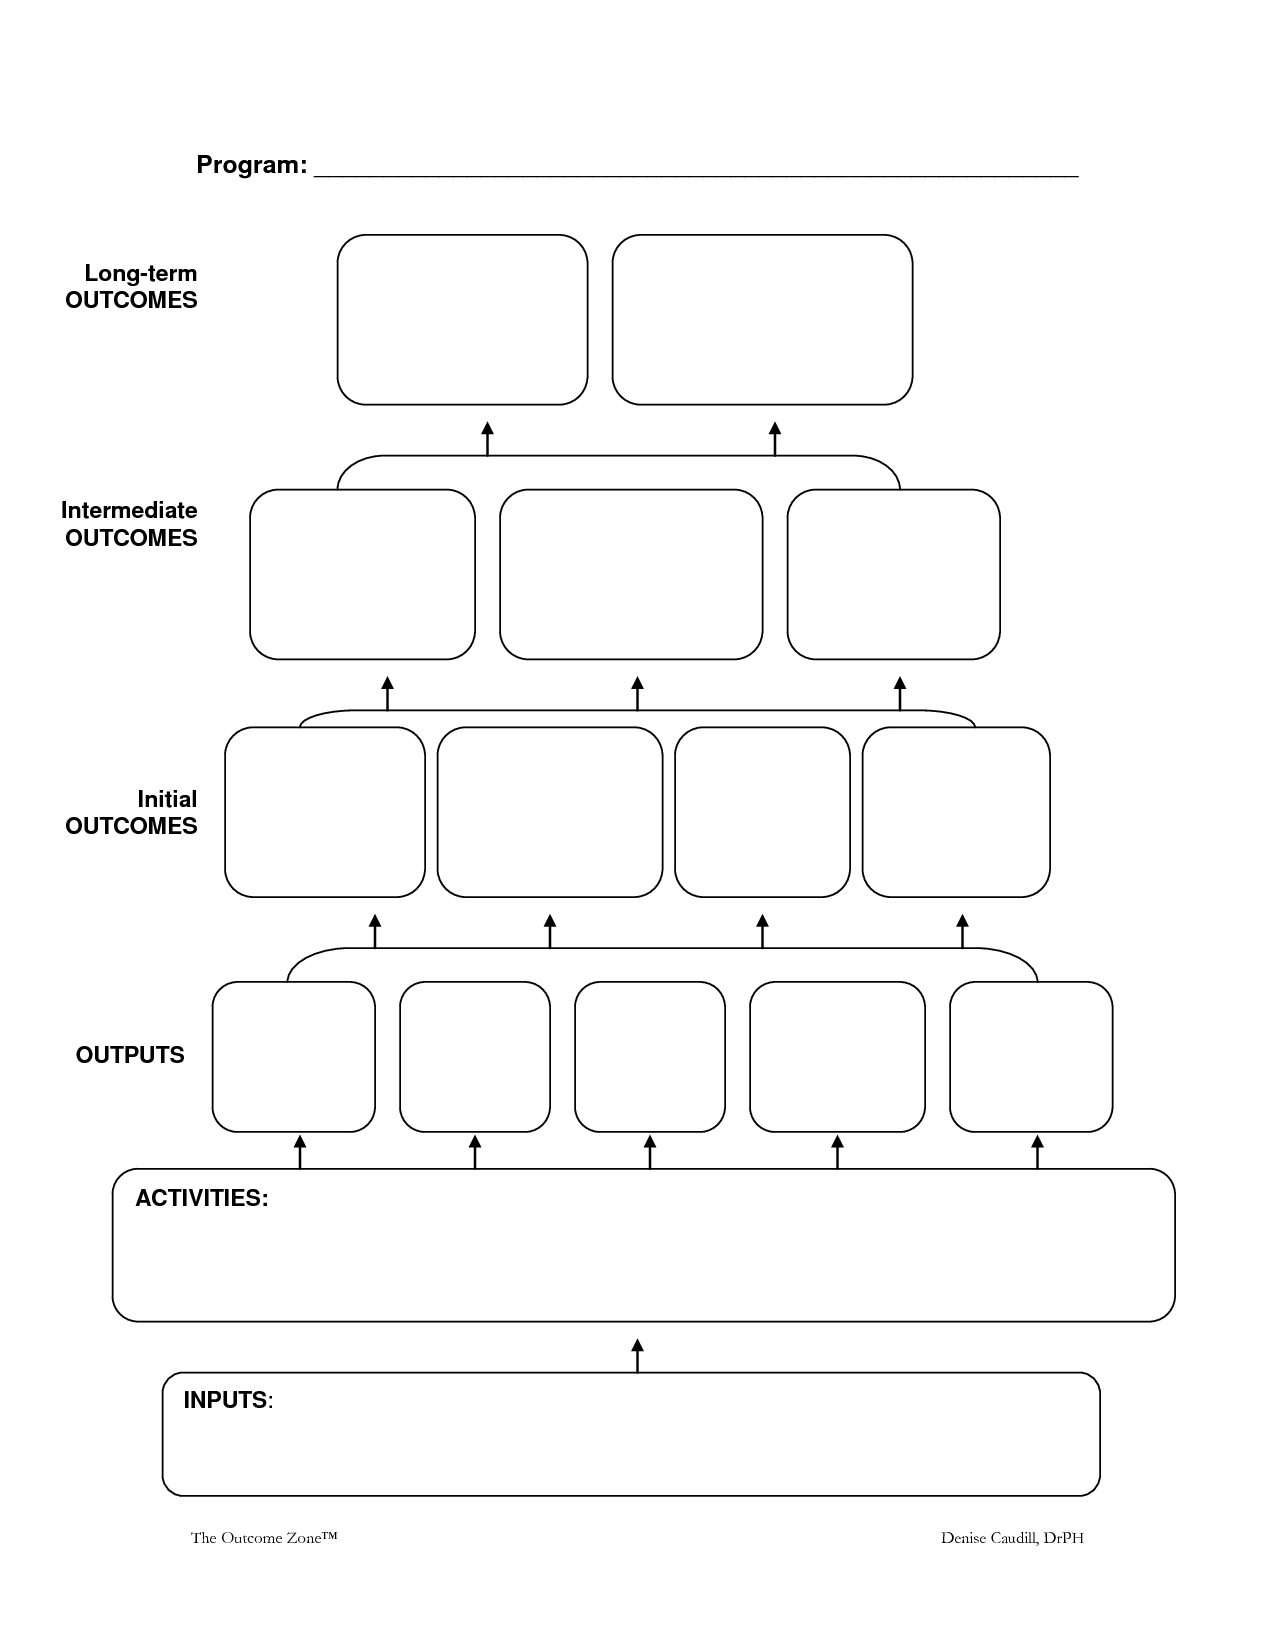 Blank Logic Model Template  Check This Useful Article By Going